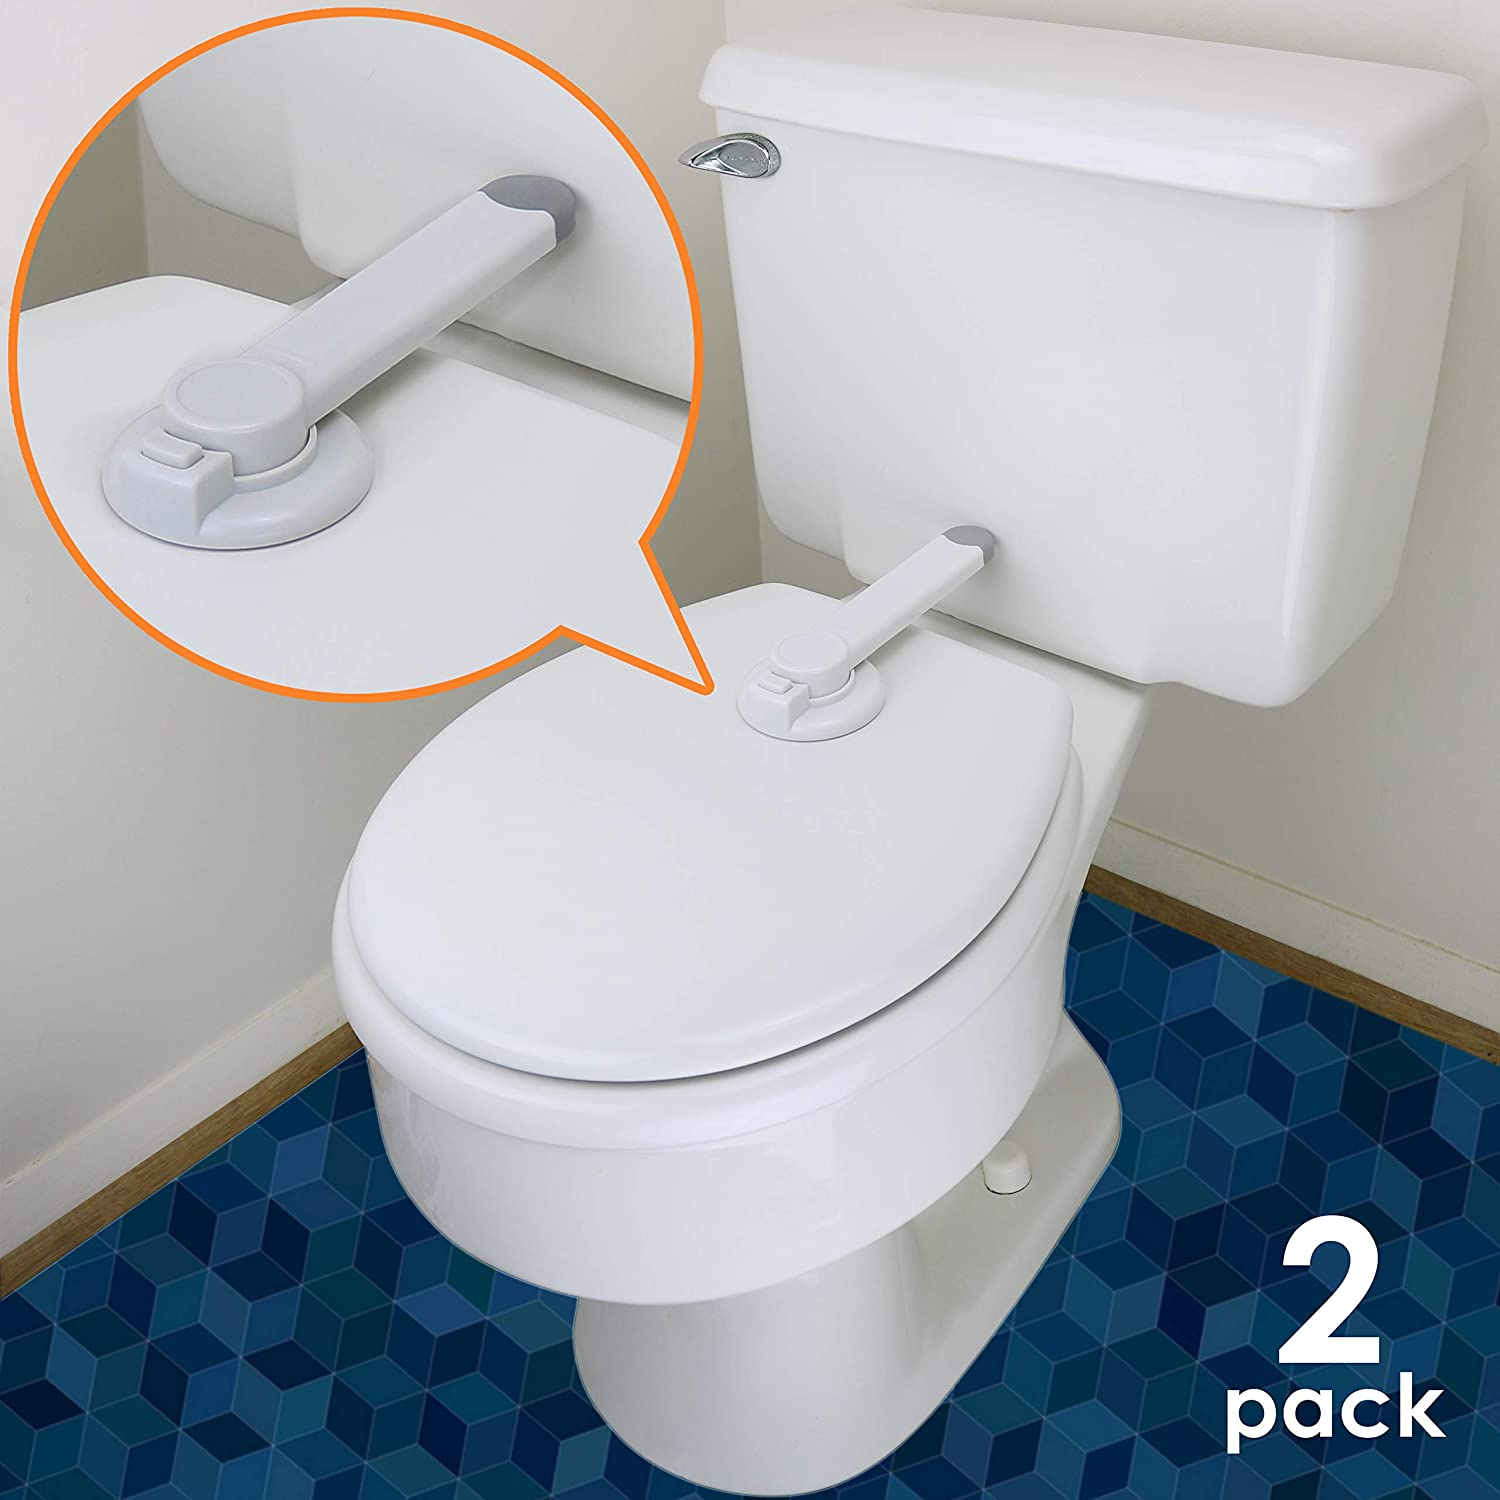 White No Tools Needed Easy Installation with 3M Adhesive Ideal Baby Proof Toilet Lid Lock with Arm Fits Most Toilets 2 Pack, White Brand: Wappa Baby Top Safety Toilet Seat Lock Baby Toilet Lock